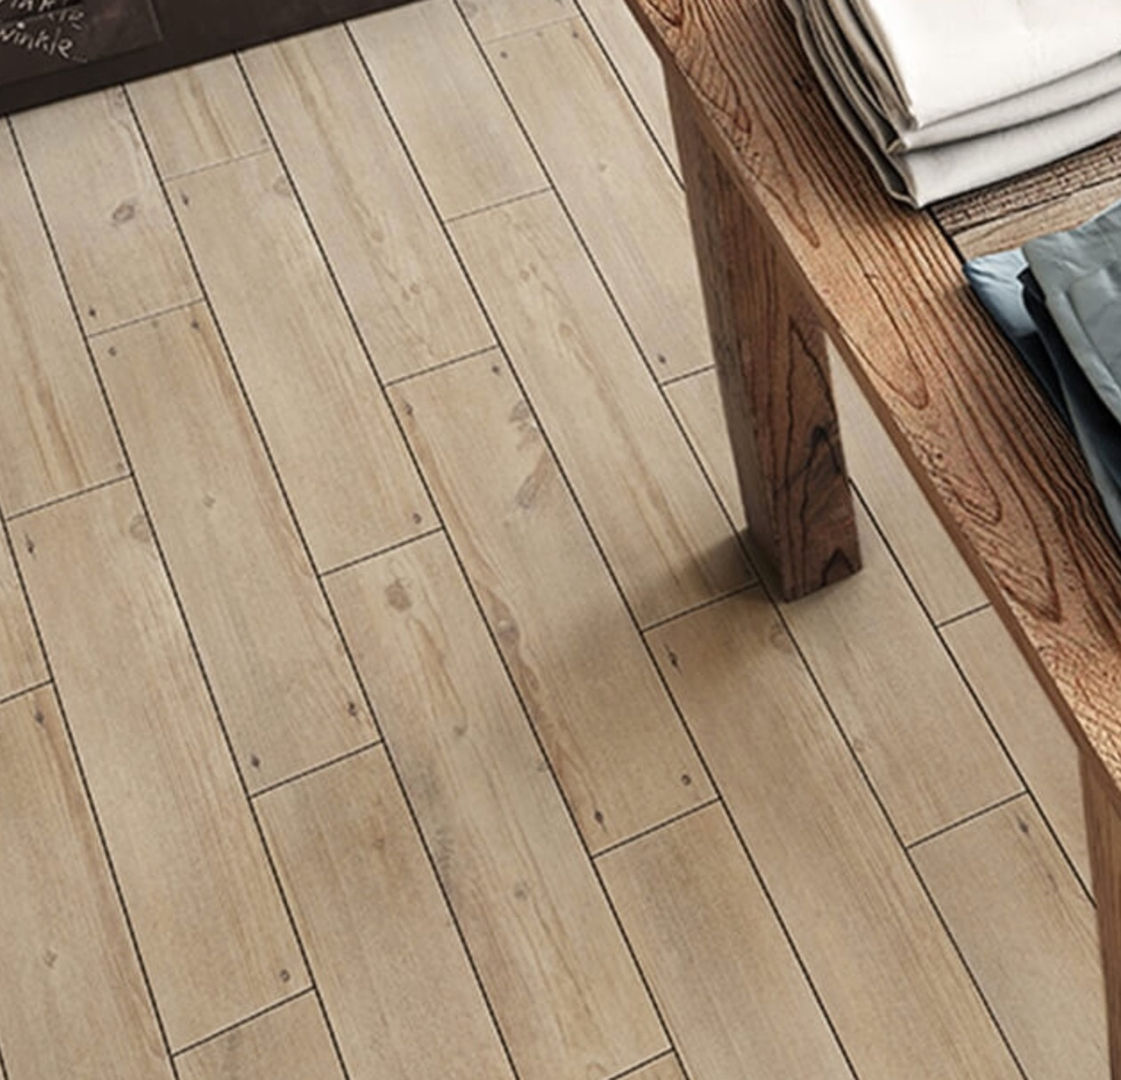 Flooring close up.